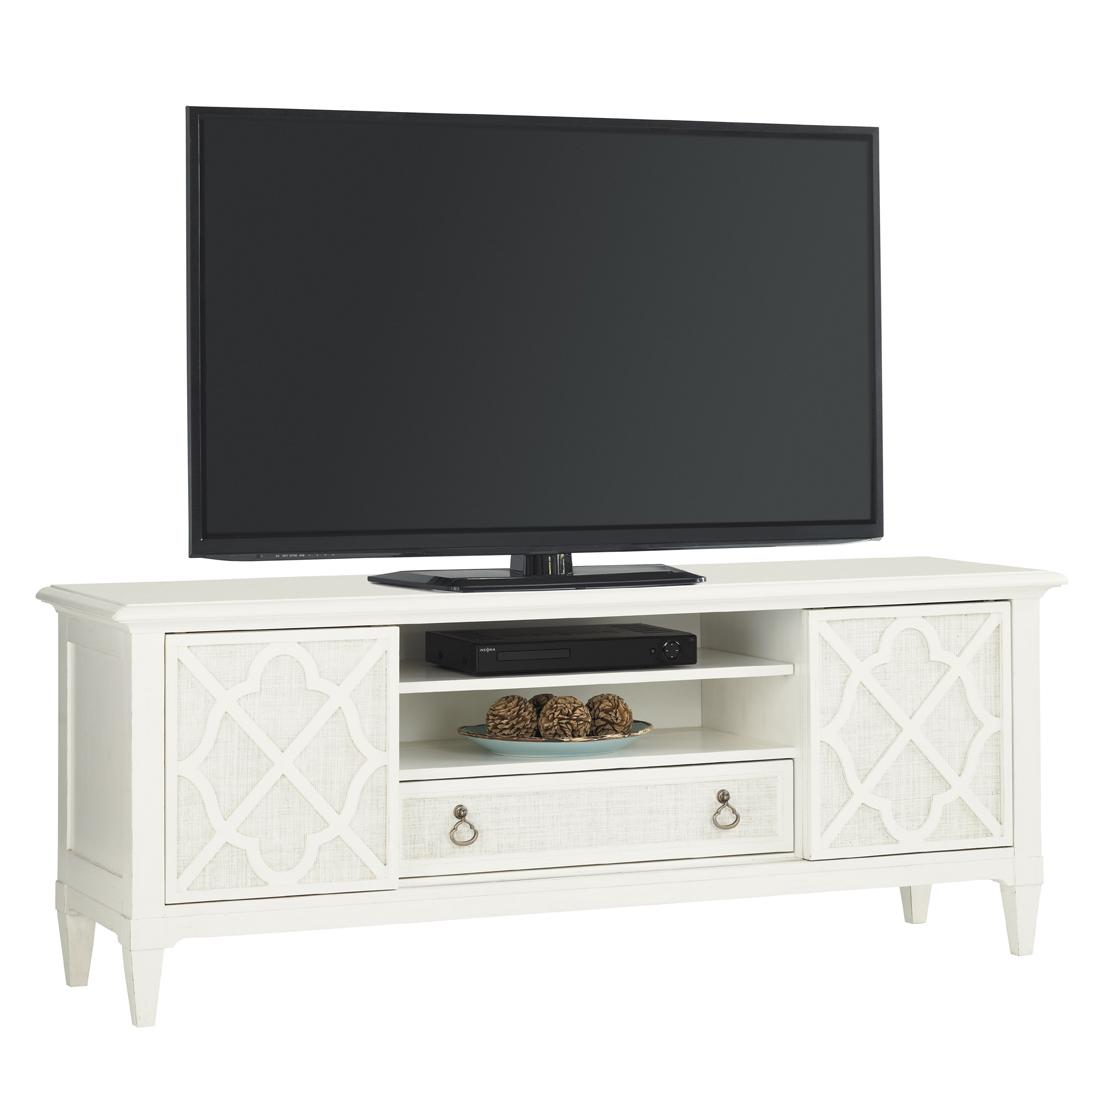 Tommy Bahama Home Ivory Key Wharf Street Entertainment Console - Item Number: 543-907